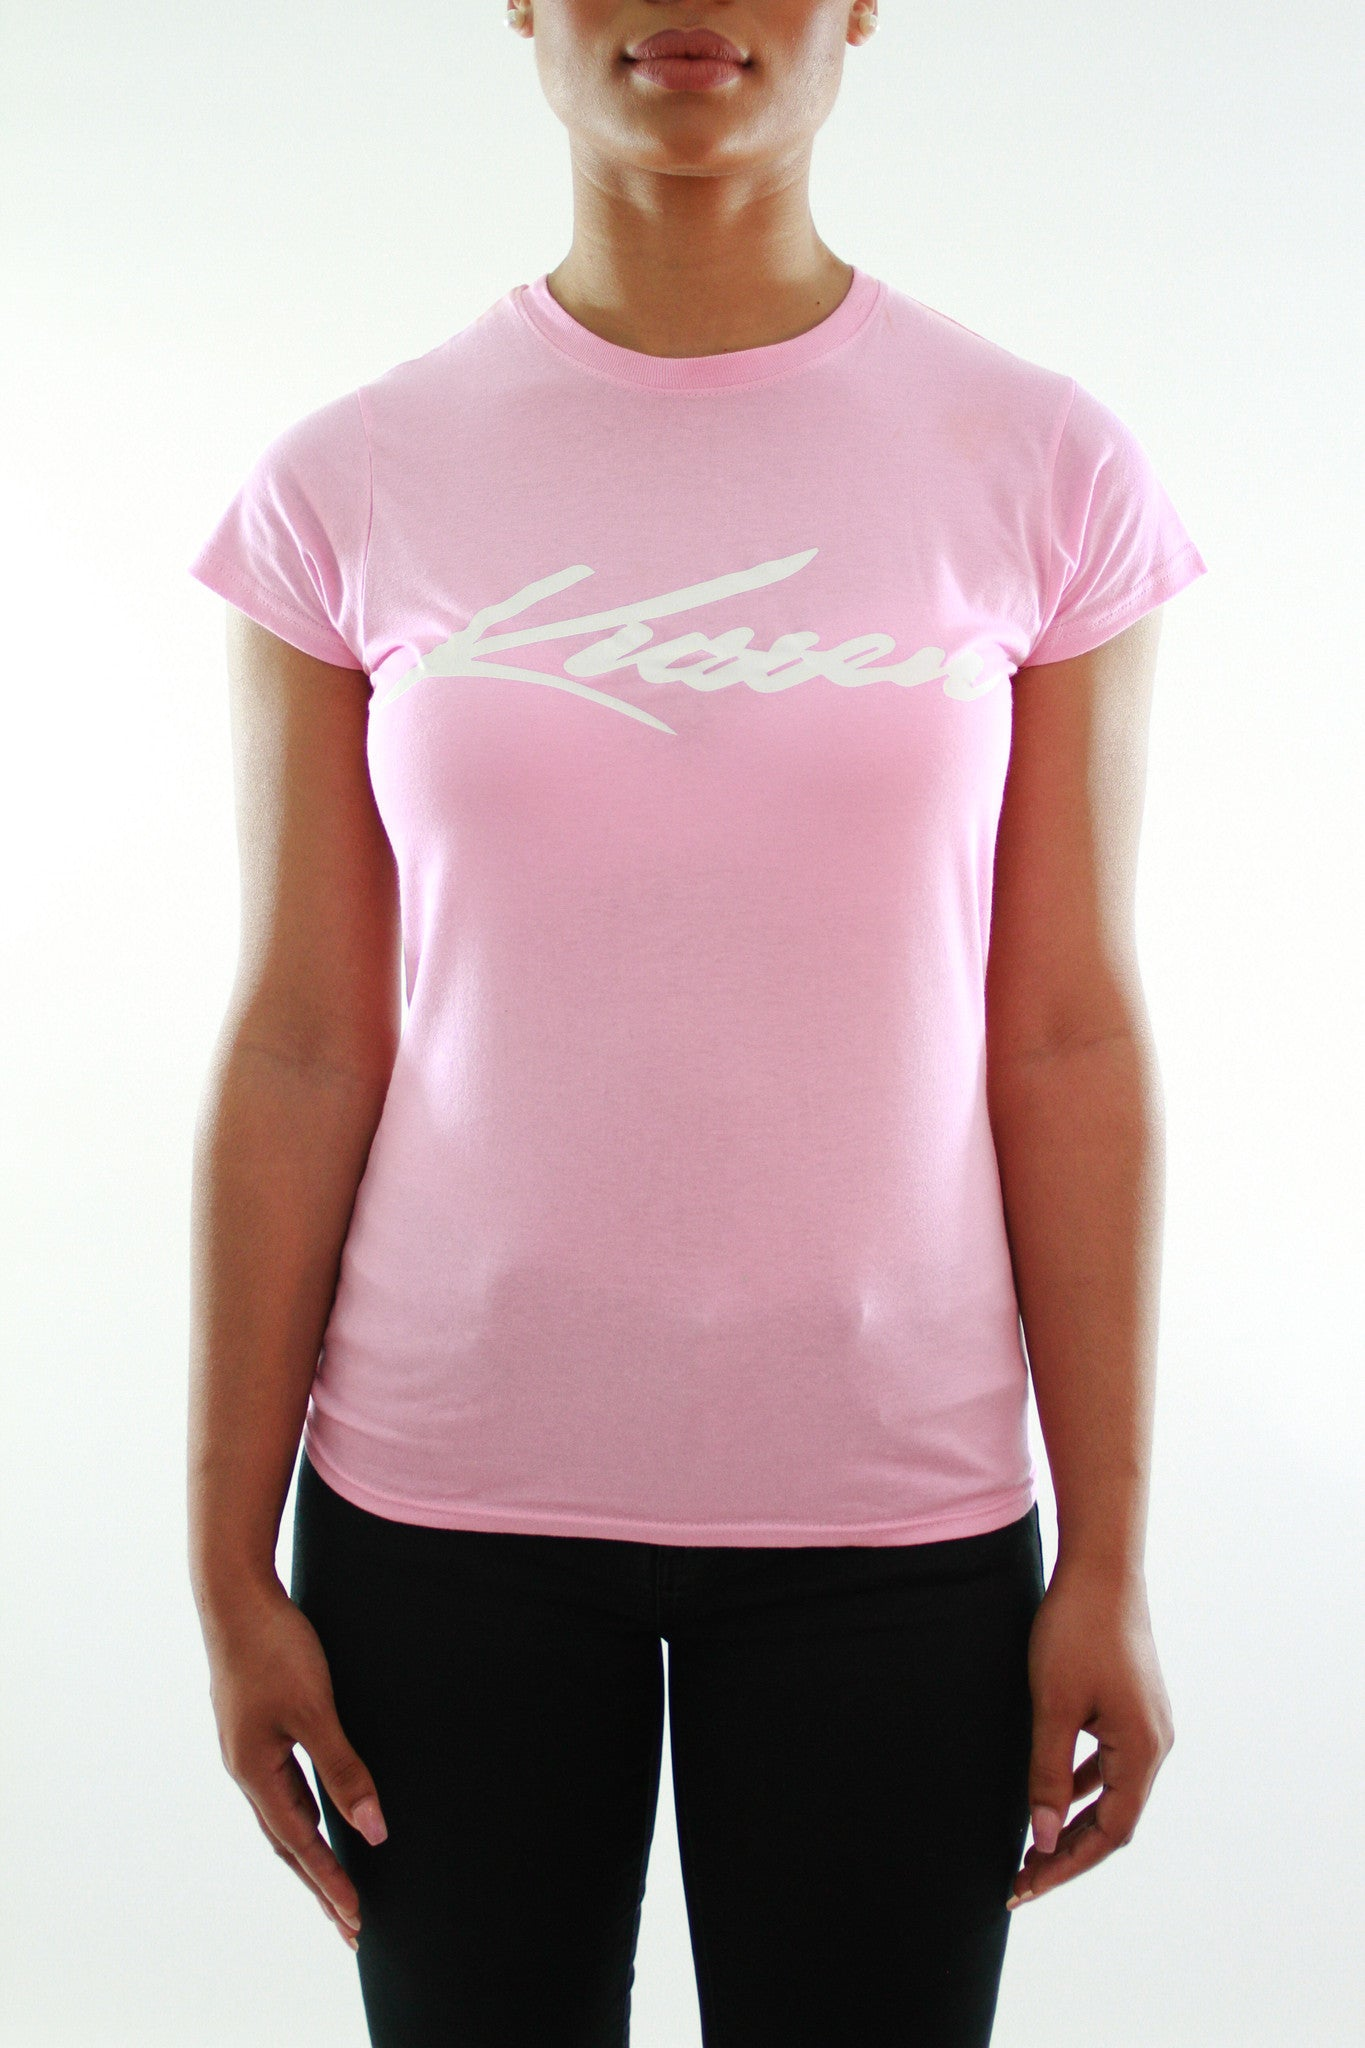 KUSSEN FITTED FEMALE SIGNATURE PINK T-SHIRT